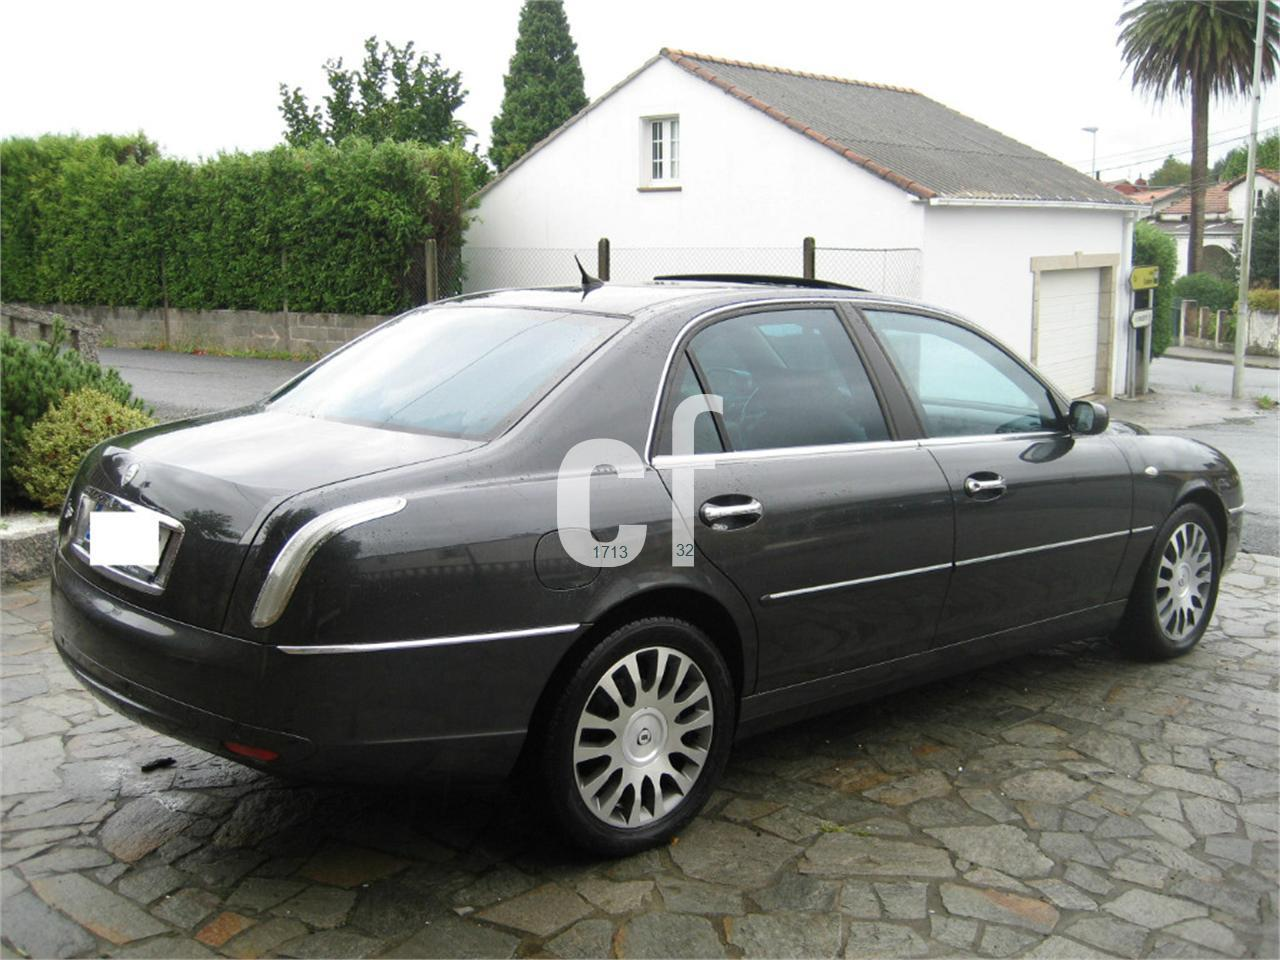 dvd su lancia thesis 2004 lancia thesis stola s85 dvd movies, and mp3 player provided entertainment the vehicle had been stretched 600 mm in comparison to the lancia thesis.